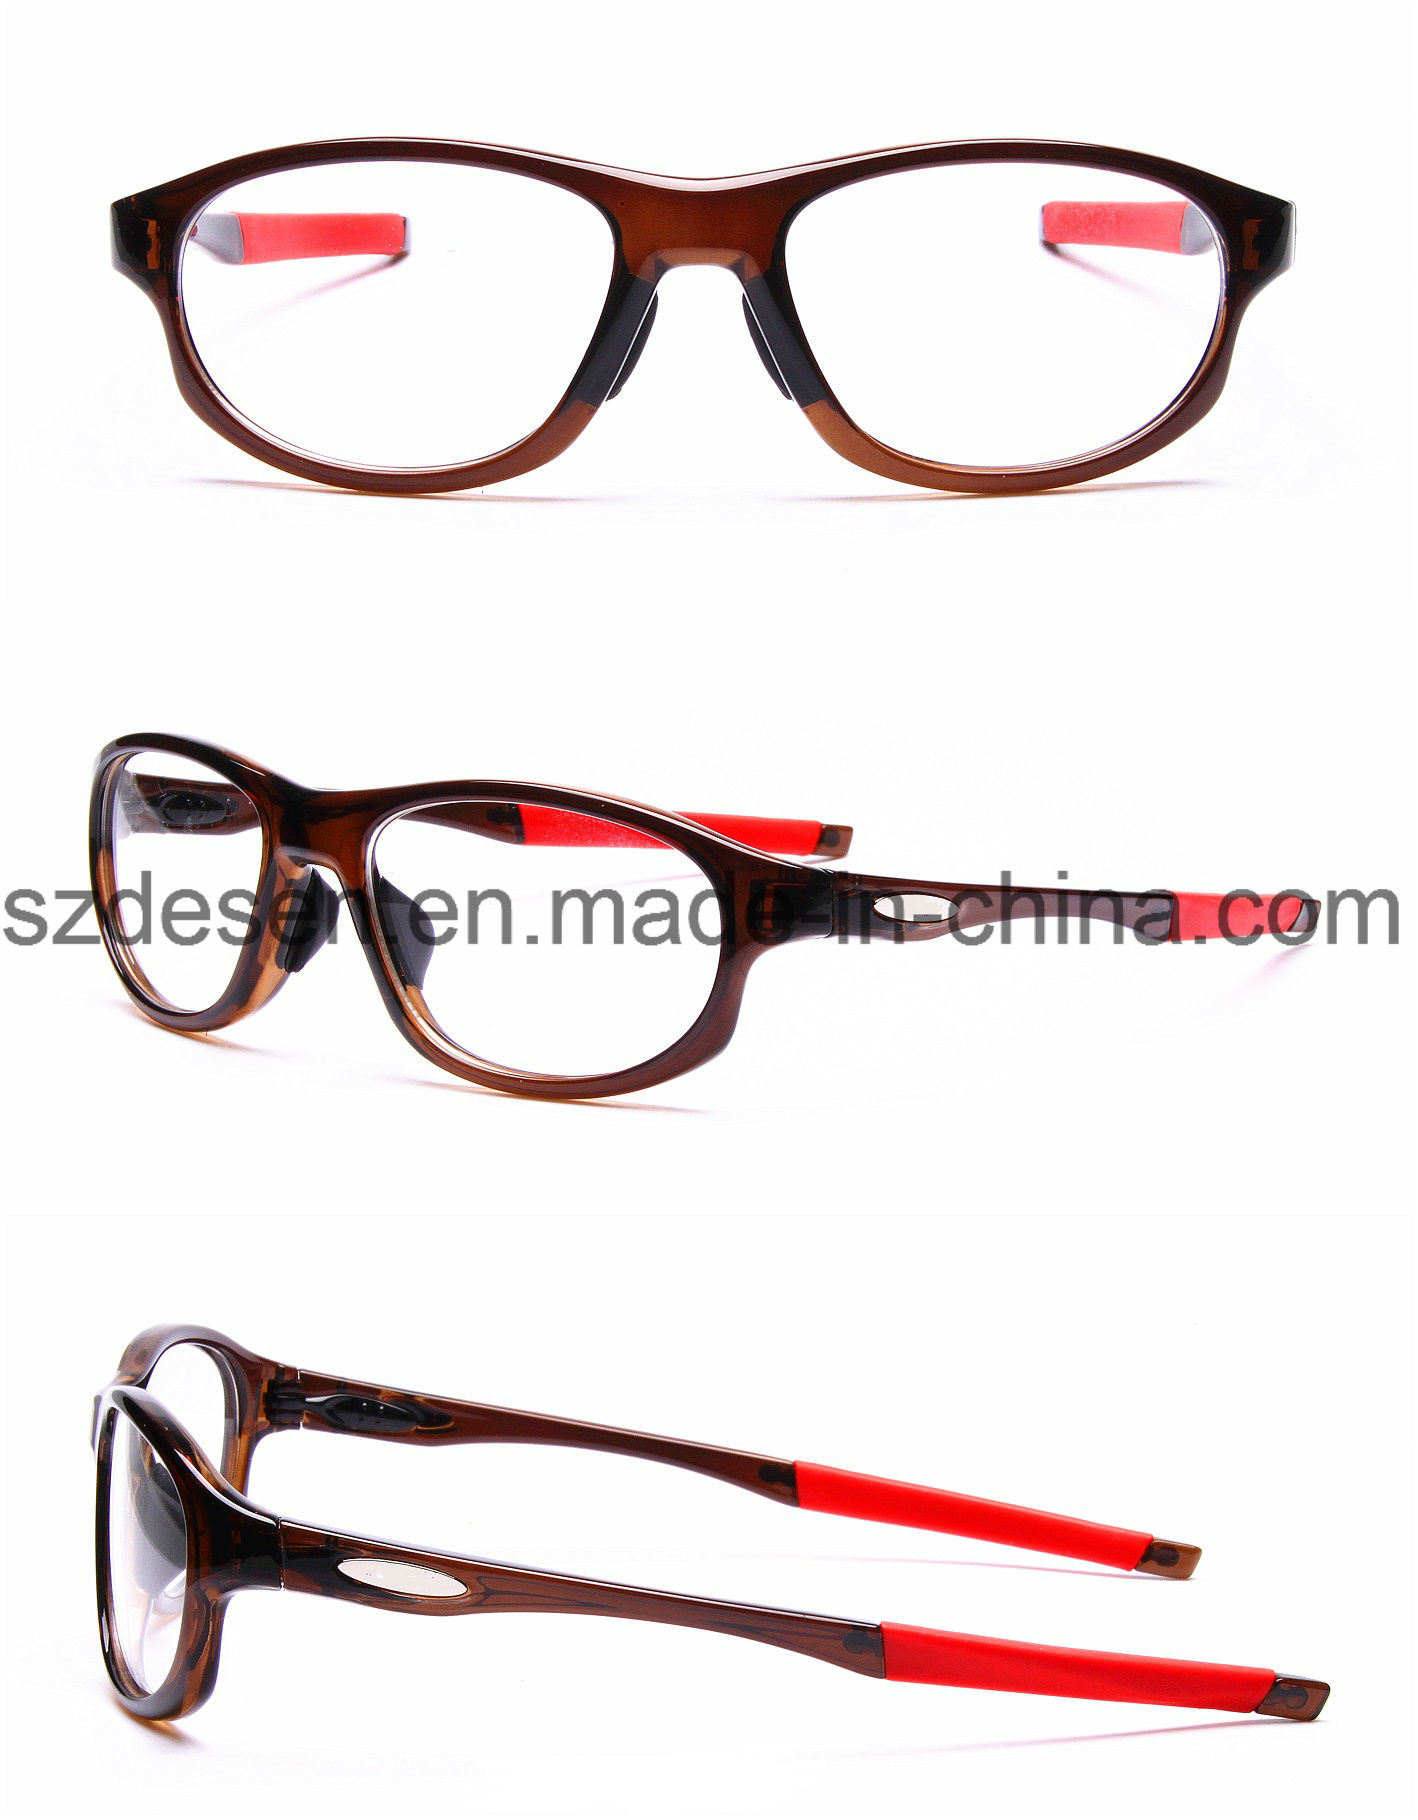 China Hot Selling Low Price Sport Optical Frames Eyewear Glasses ...